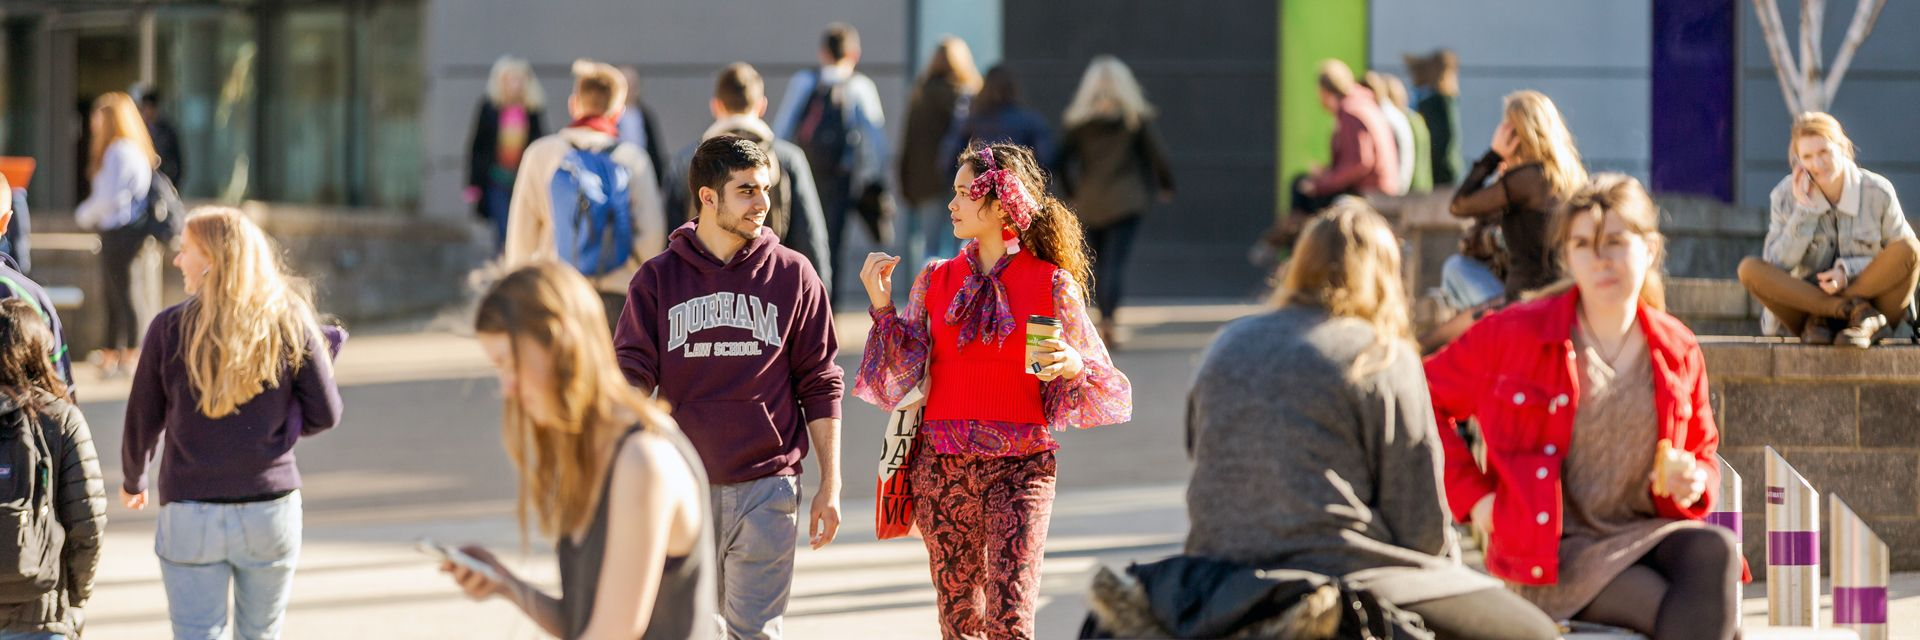 Lower Mountjoy campus bustling with students between lessons